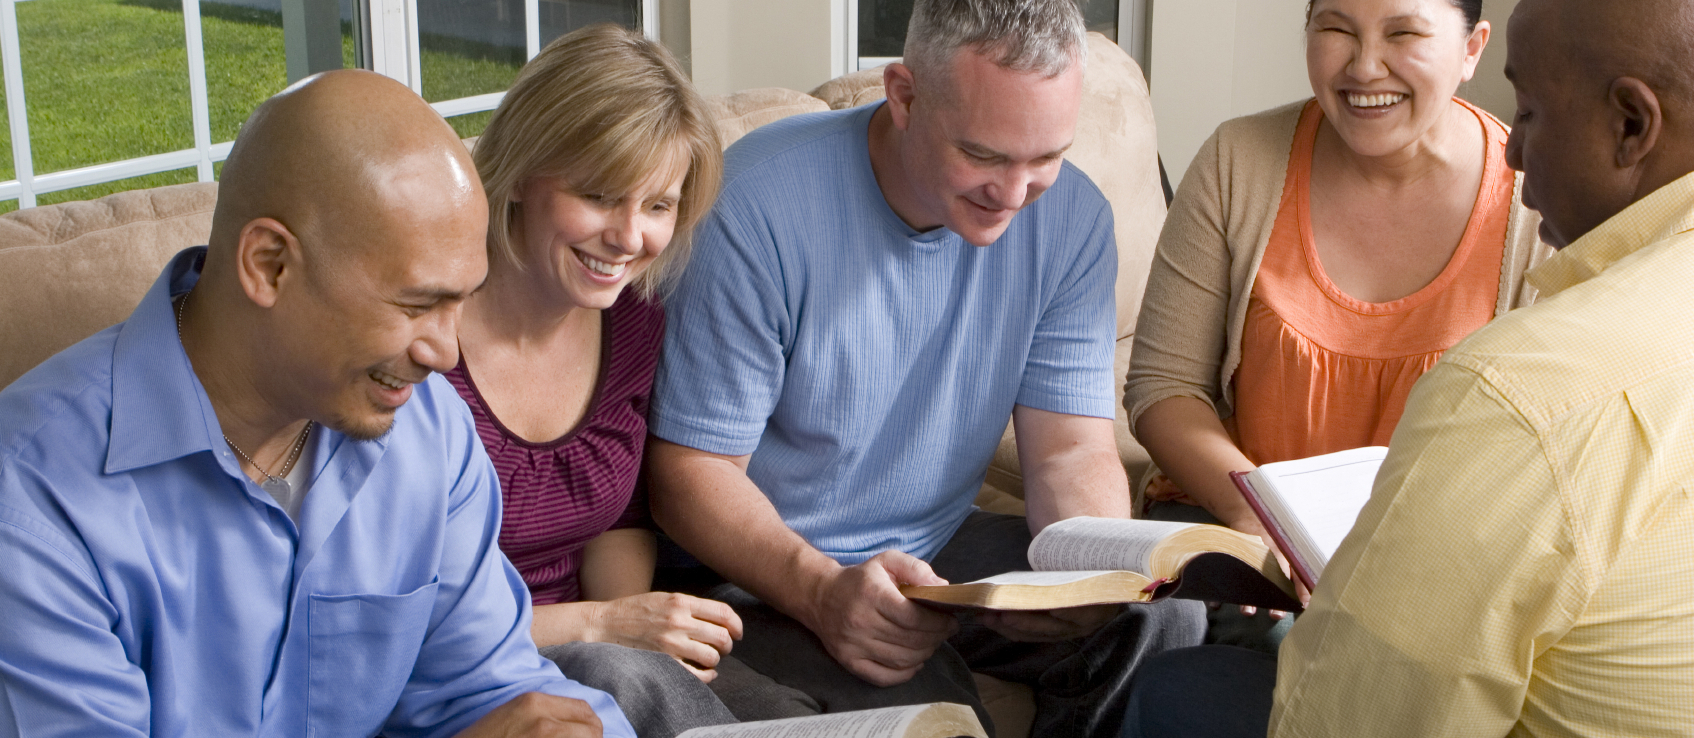 What Could a Discipleship Meeting Look Like